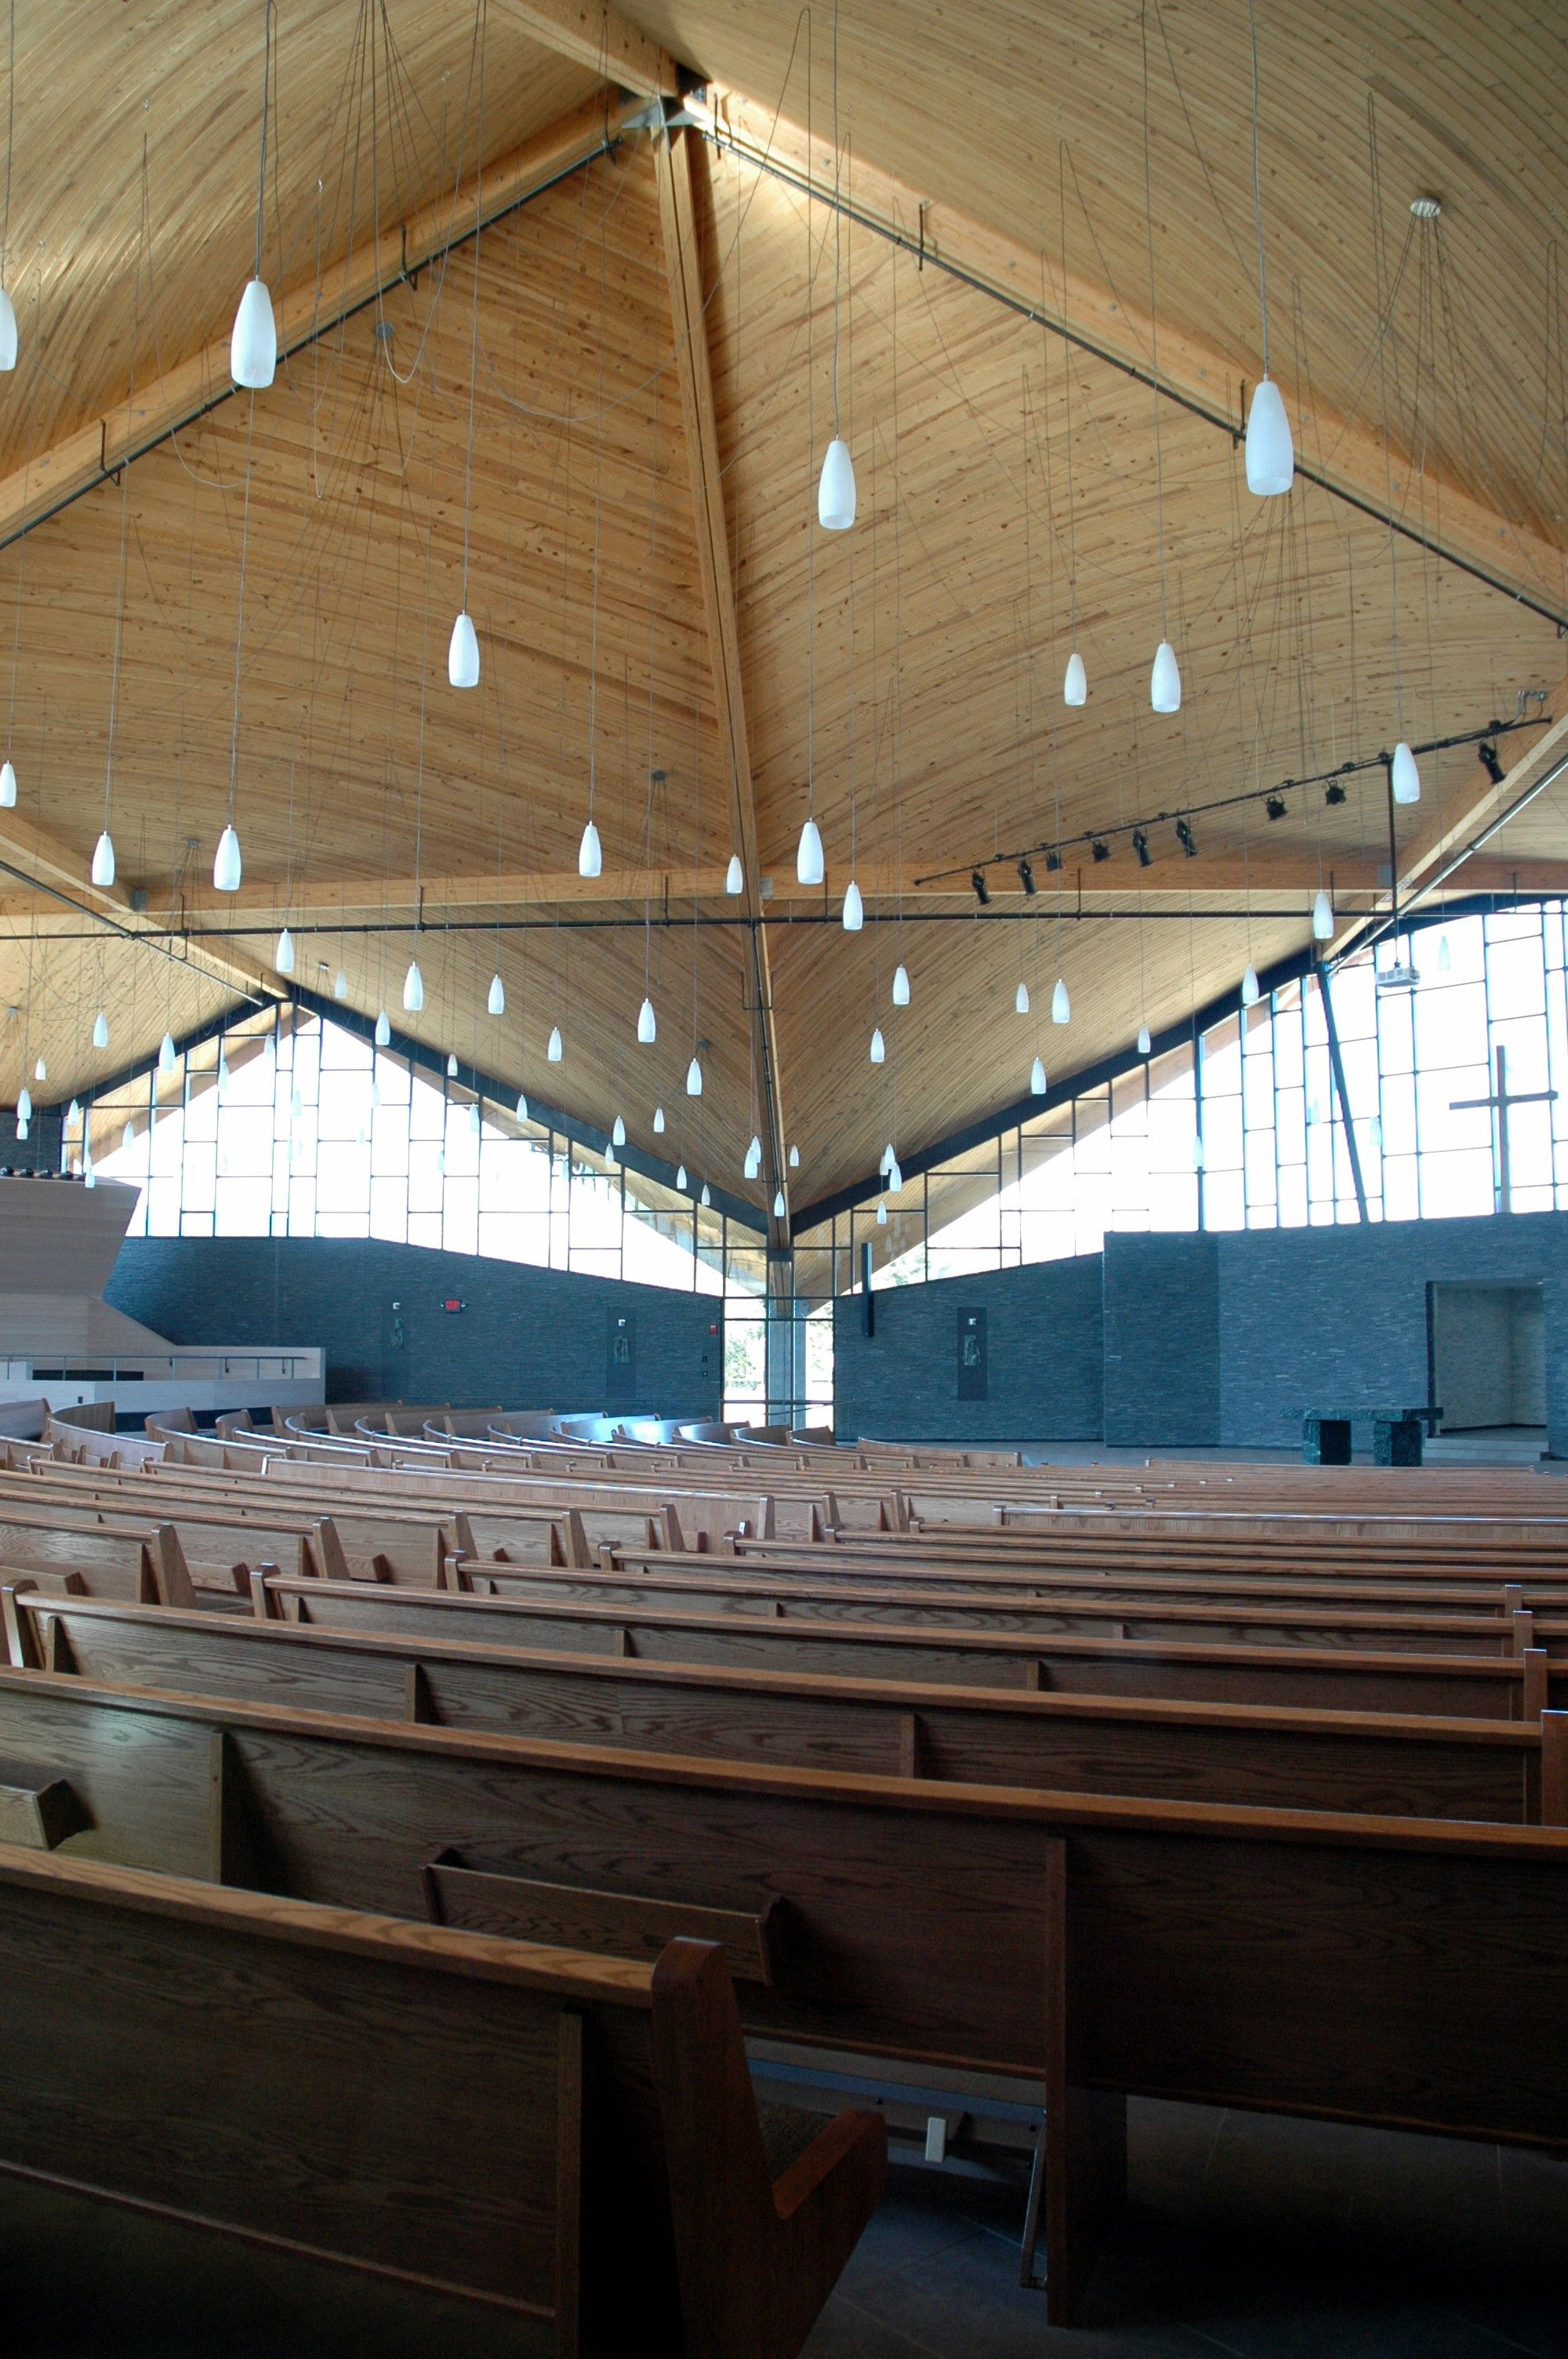 Another detailed shot of the HP roof with glulam beams at St. Alyosius Church in Jackson, NJ. The intersecting directions of the grains of wood create visual interest while keeping the warm glow and natural beauty of the wood.